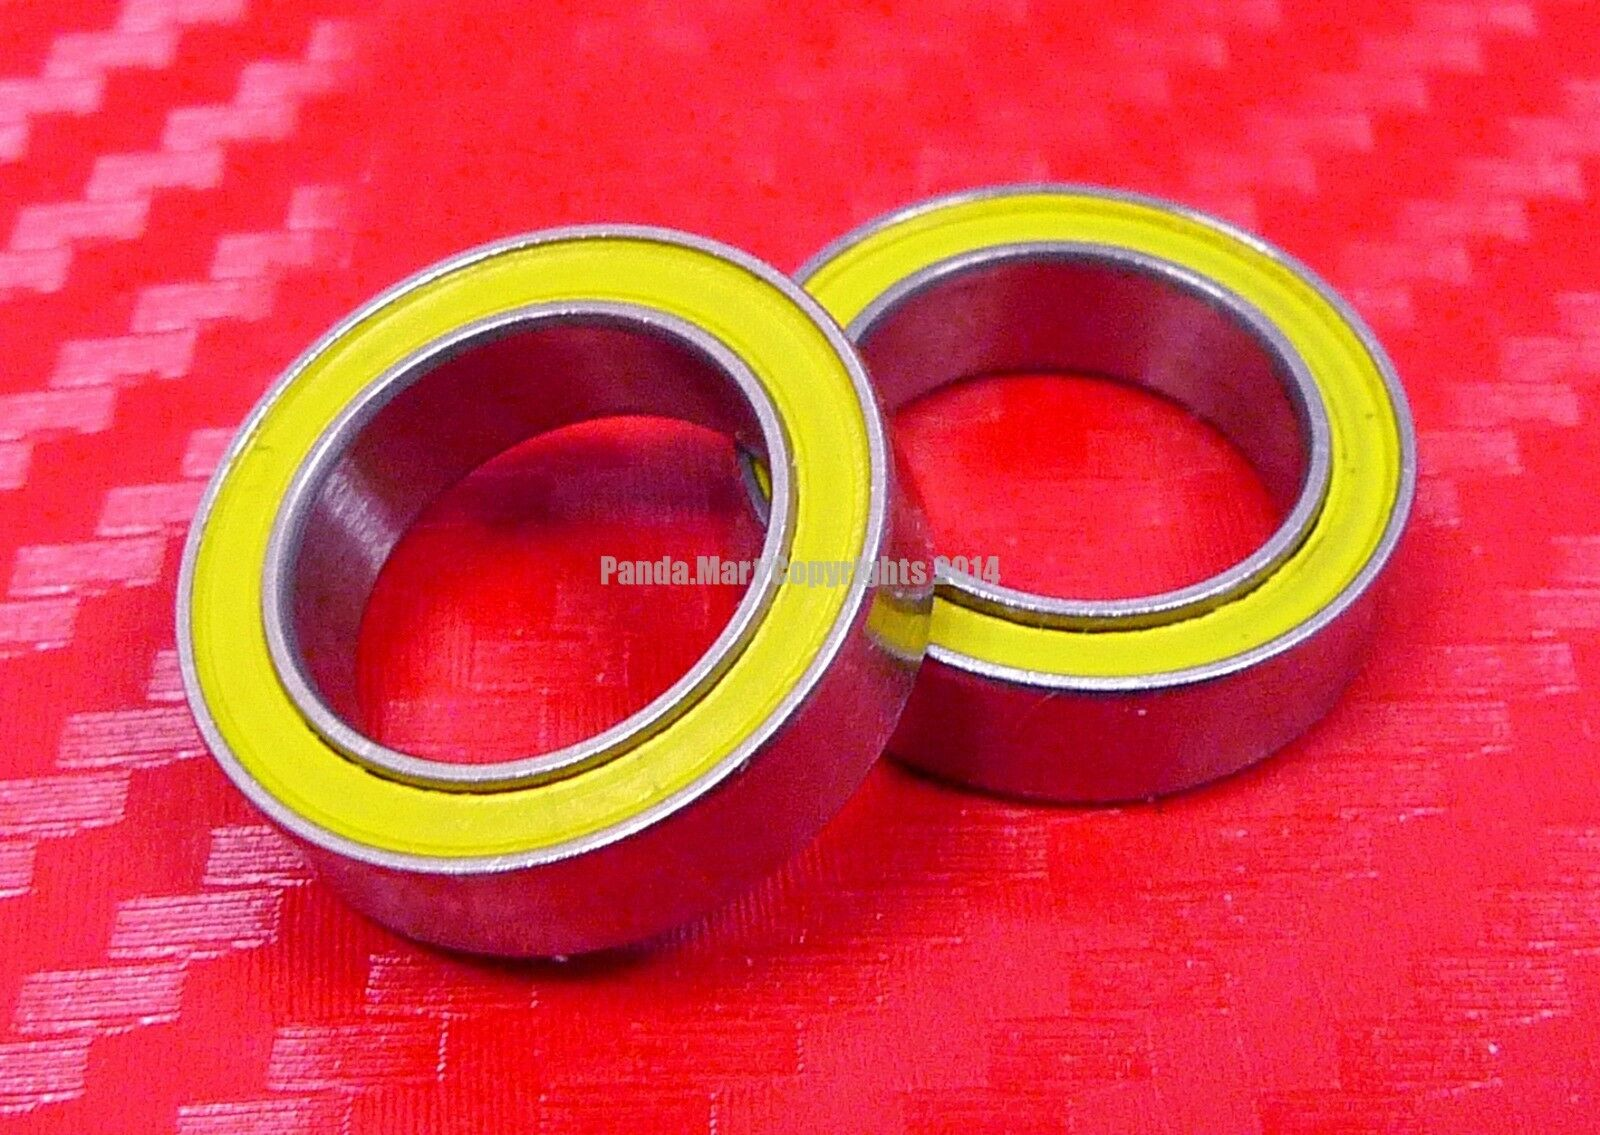 S16002-2RS 2 PCS 15x32x8 mm 440c Stainless Steel Rubber Sealed Ball Bearings